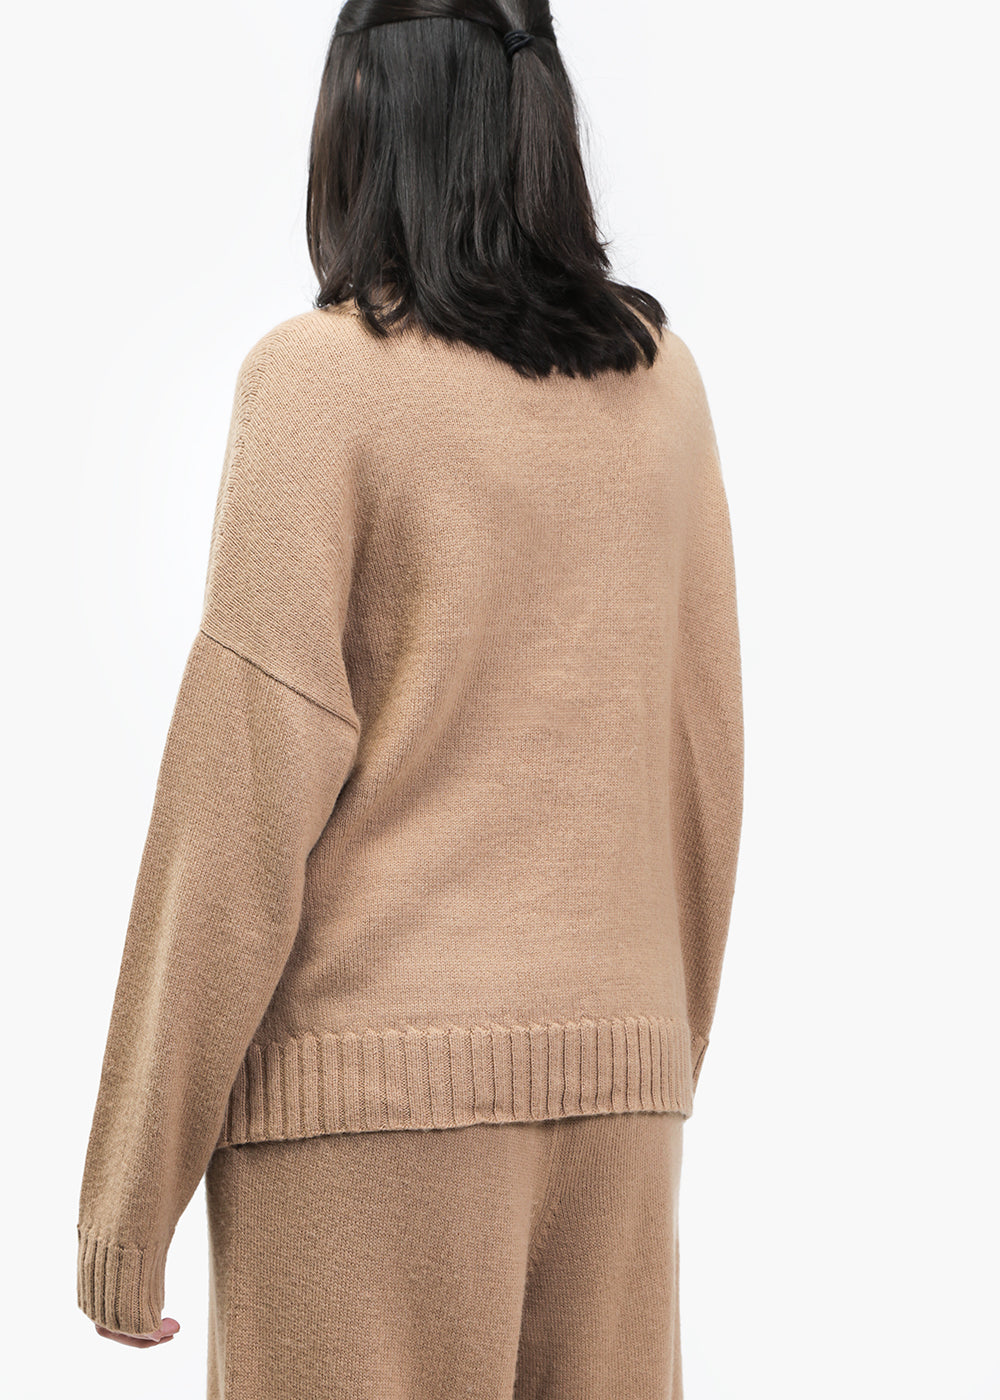 Lauren Manoogian Dune Wide Crewneck — Shop sustainable fashion and slow fashion at New Classics Studios